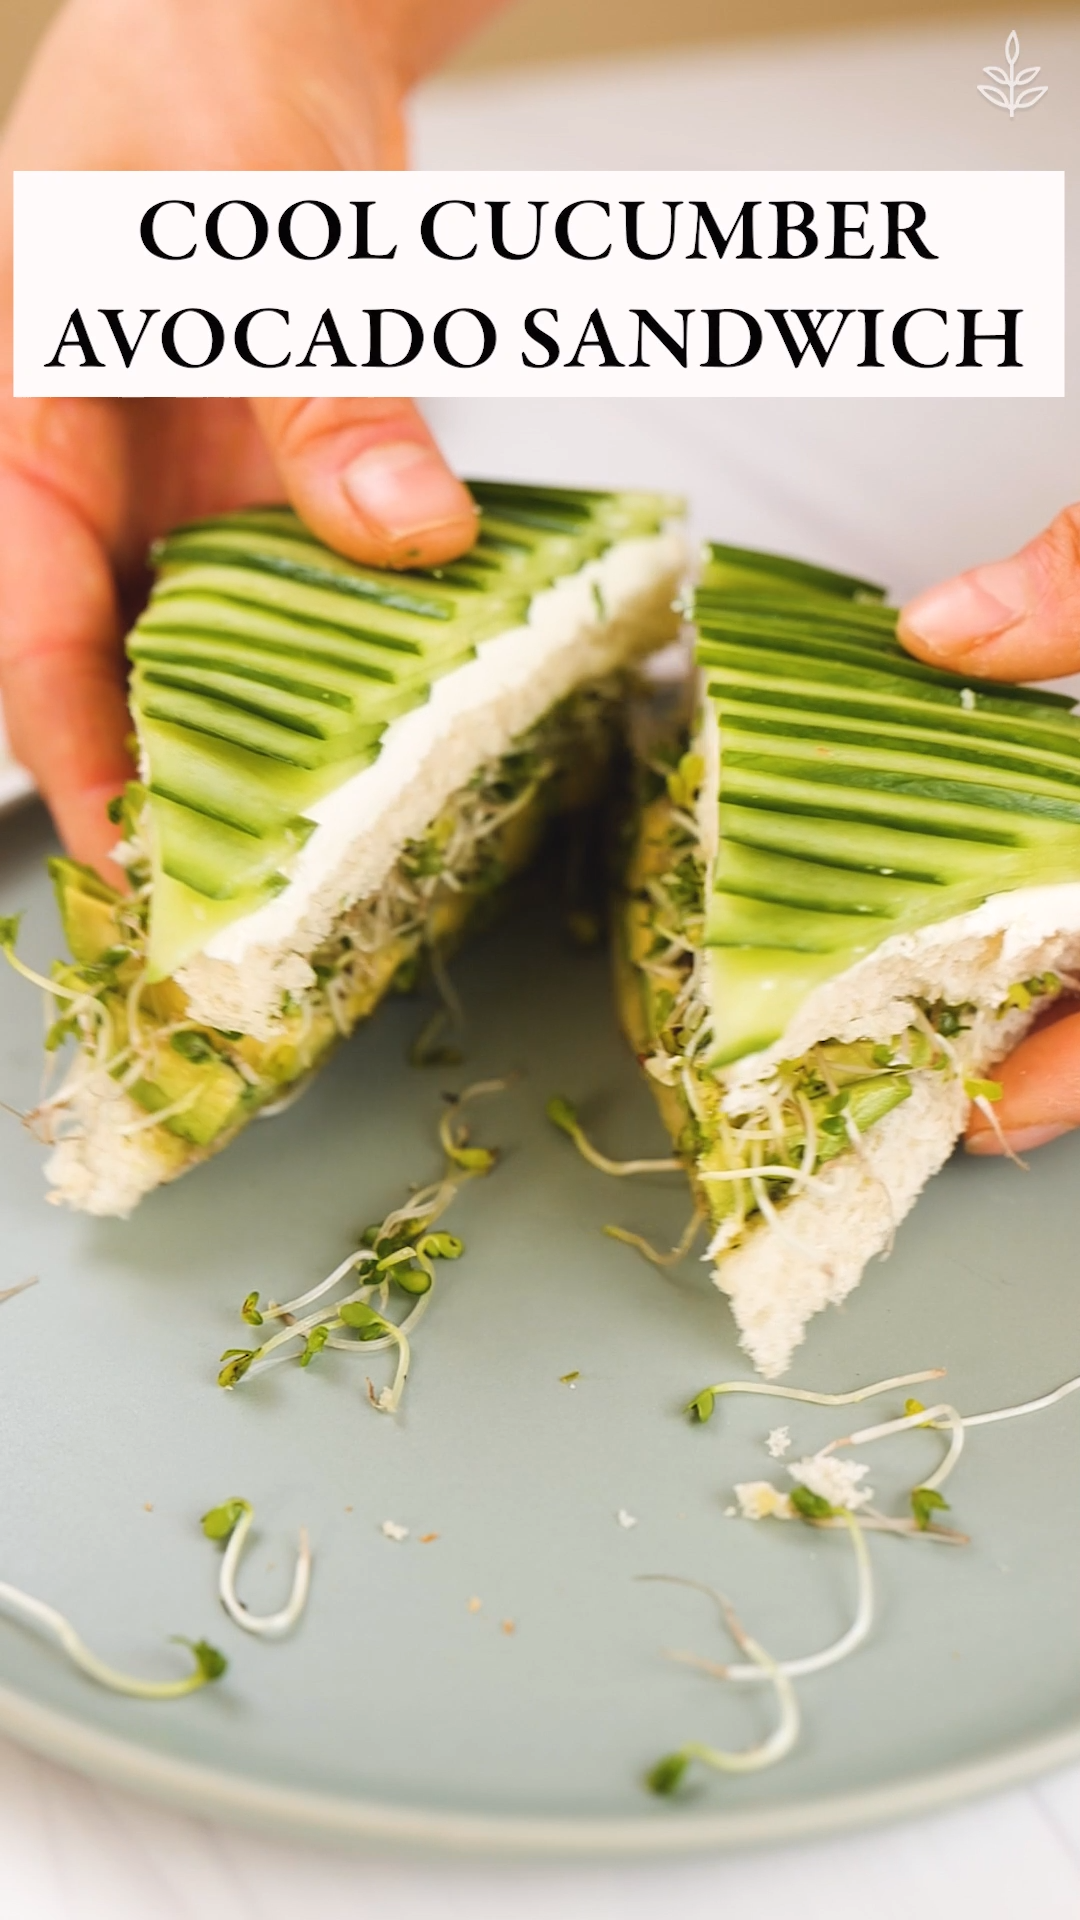 Cool Cucumber Avocado Sandwich